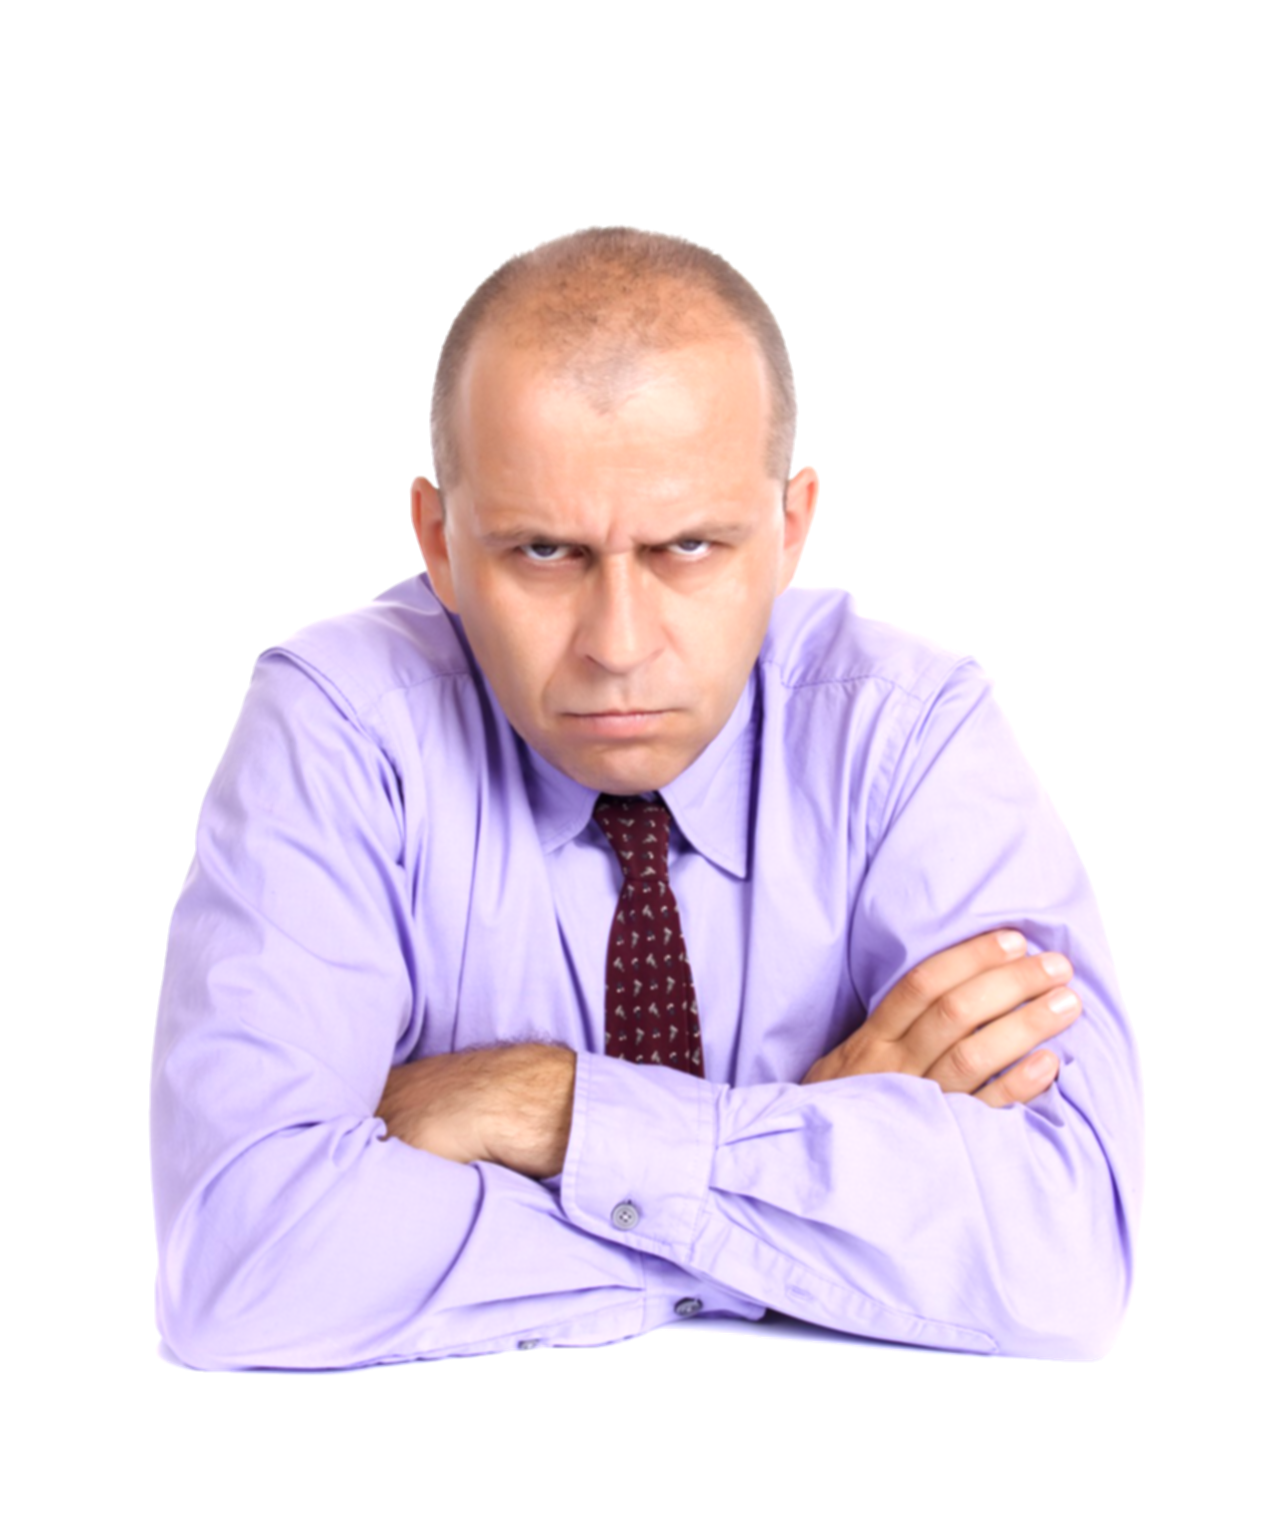 angry people png